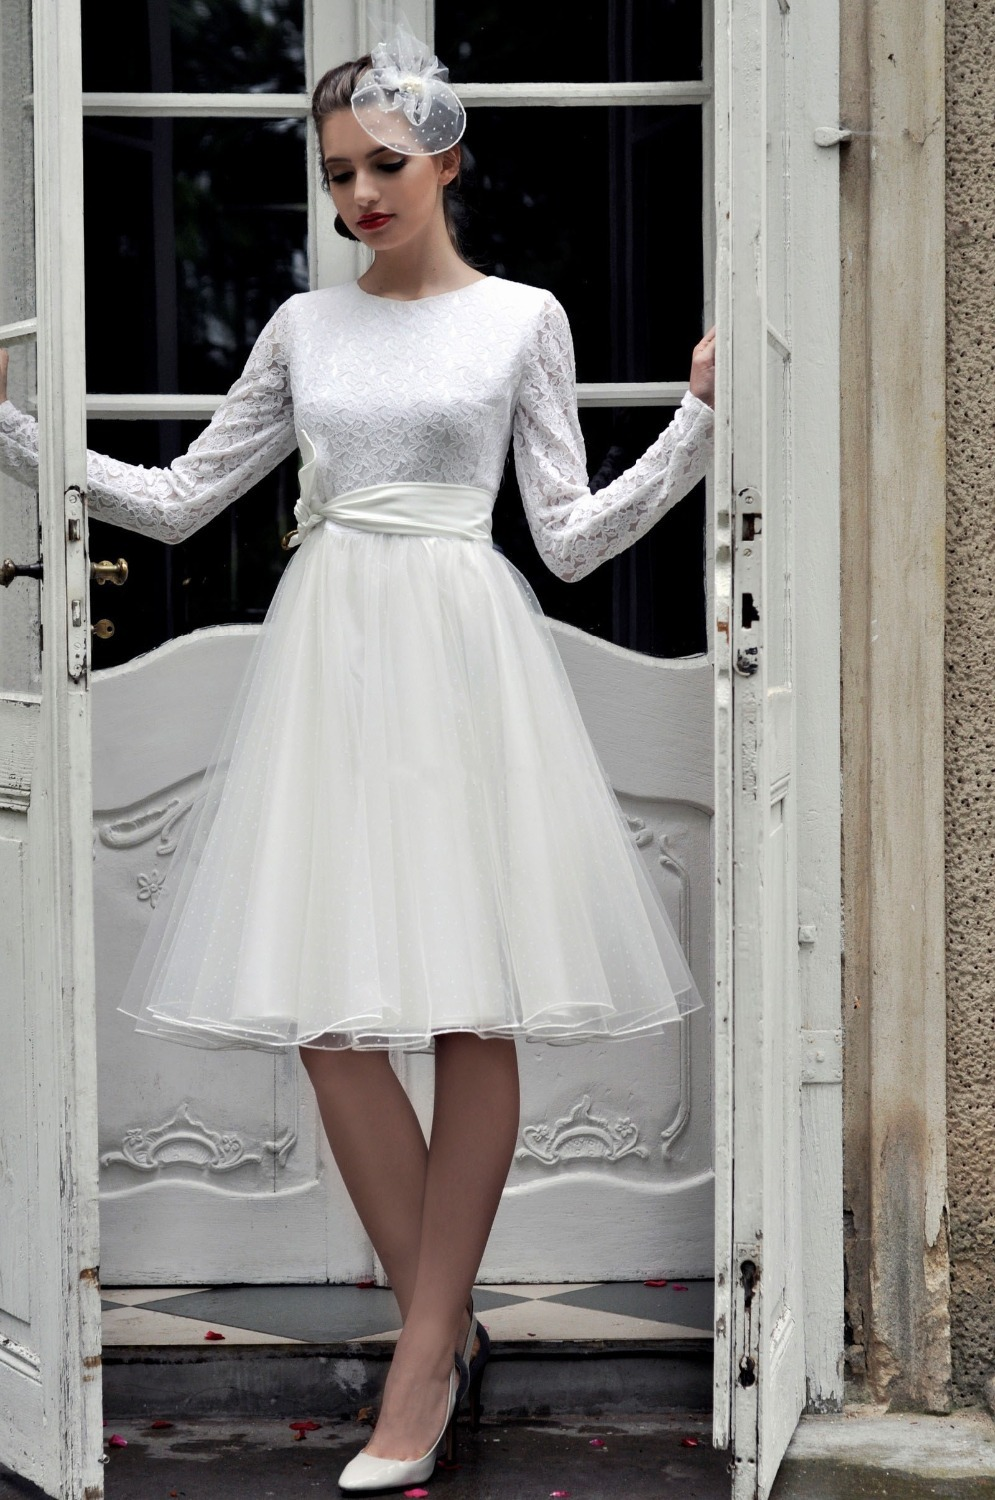 Short wedding dresses with long sleeves for Good wedding dresses for short brides